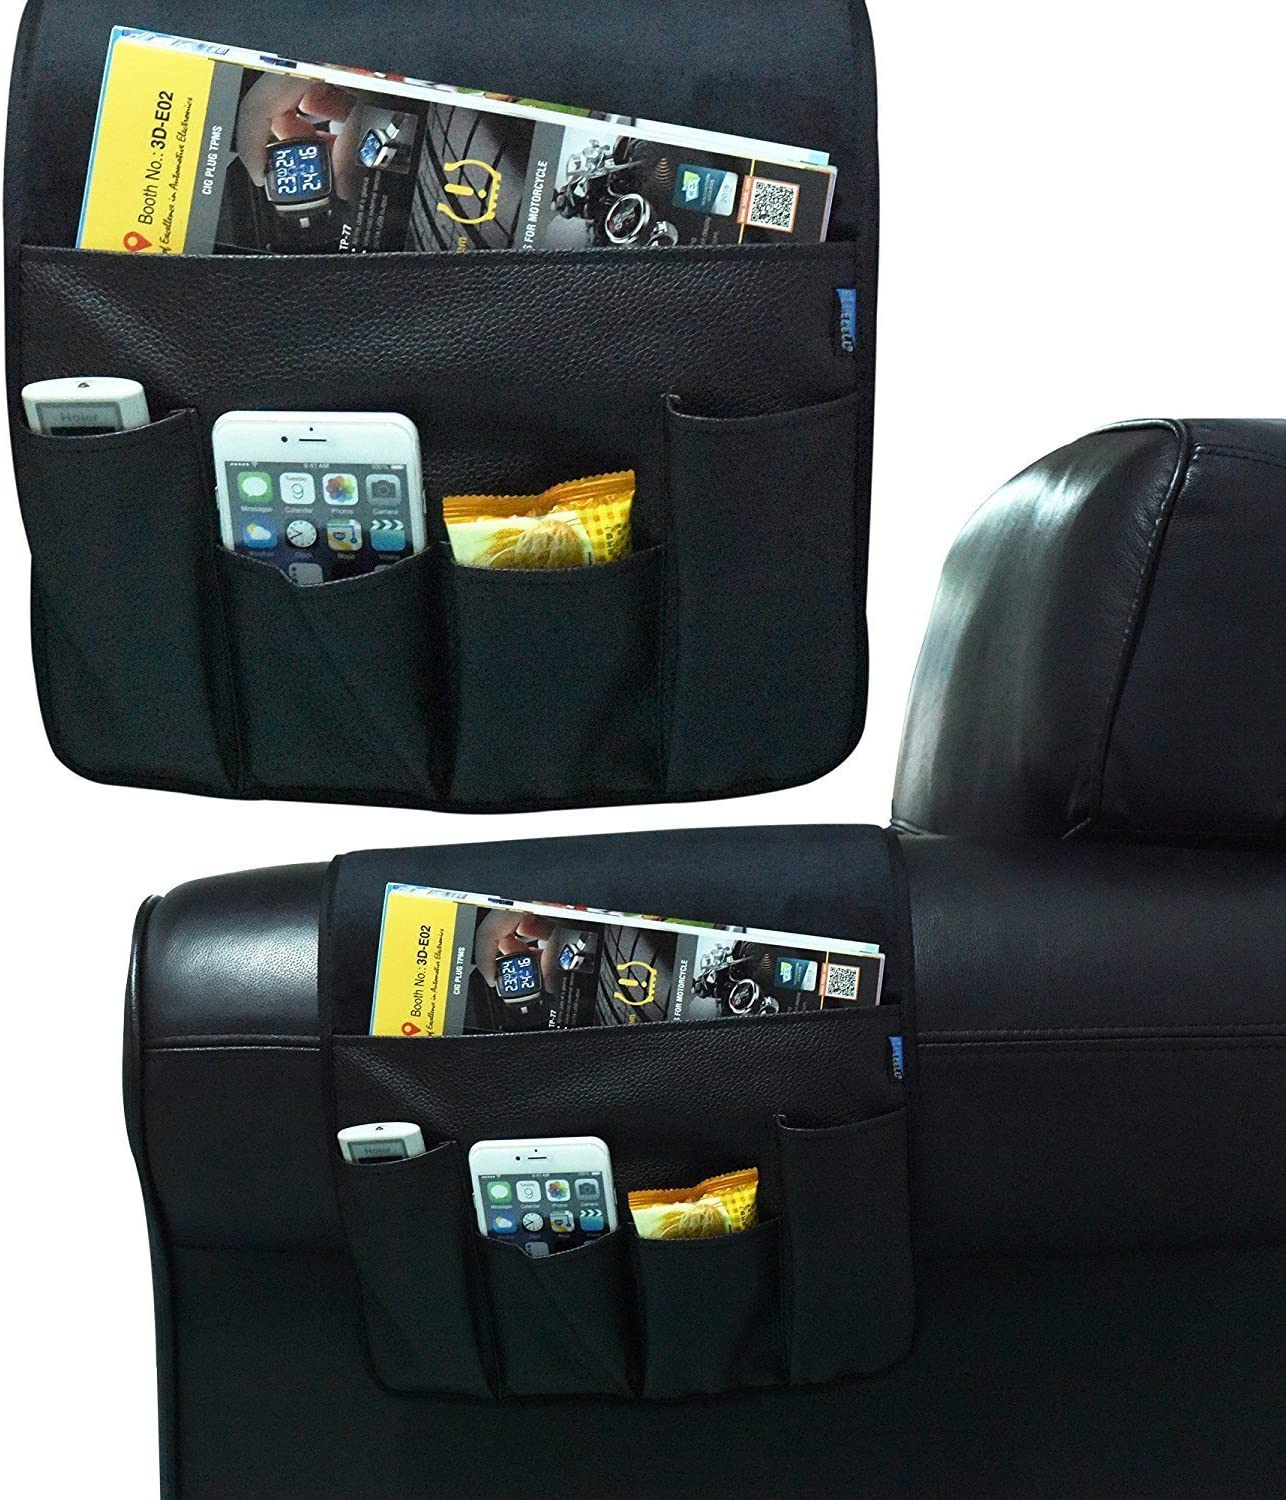 BASELIFE Space Saver Sofa Couch Chair Armrest Organizer,Magazine Rack, Draped over Sofa, Couch, Recliner Armrest for Remote Control, Cell Phone, Book, Pencil (BROWN) Black